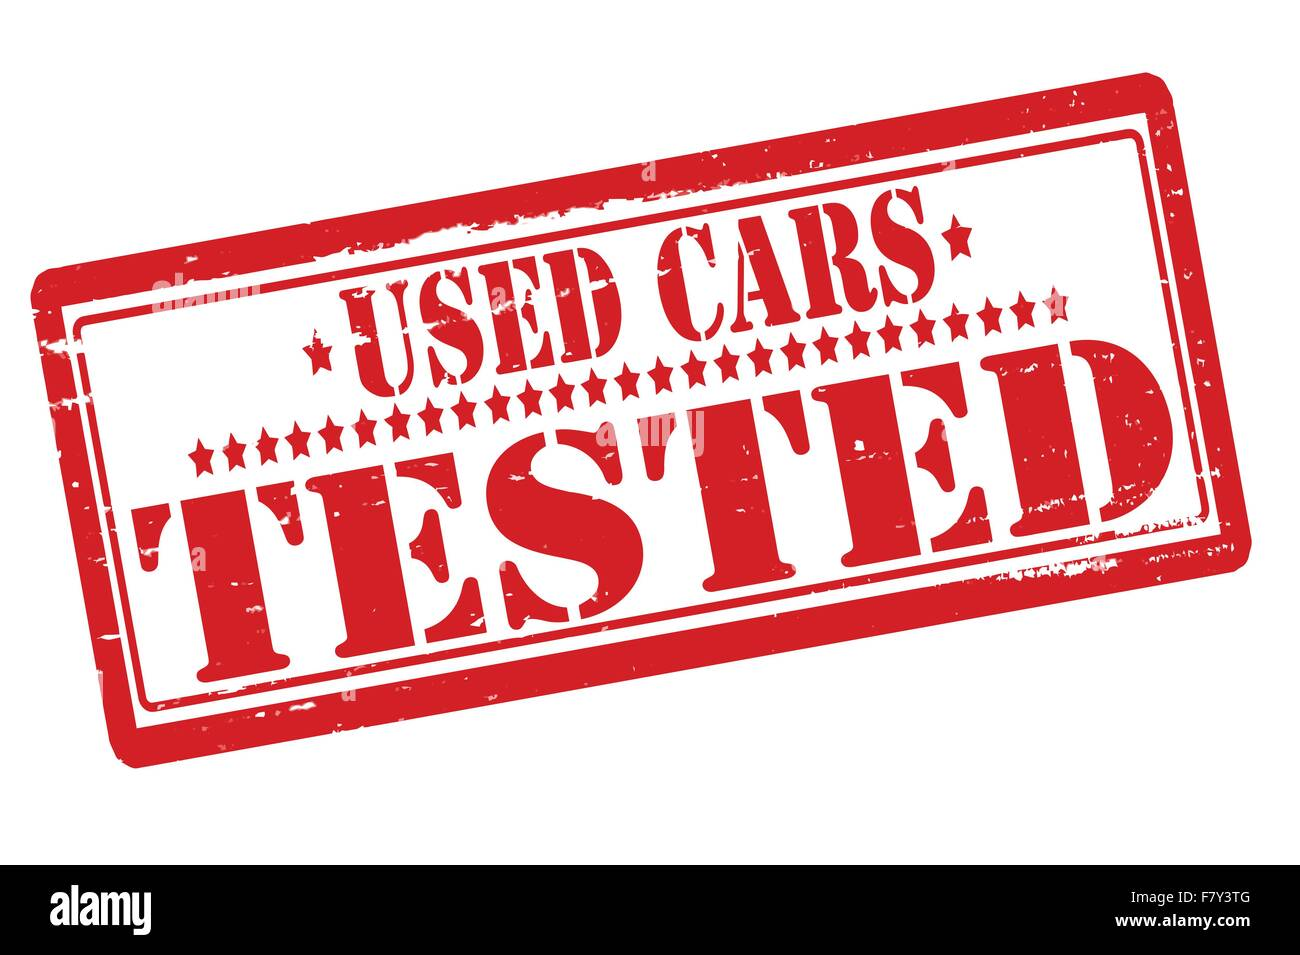 Used cars tested - Stock Vector